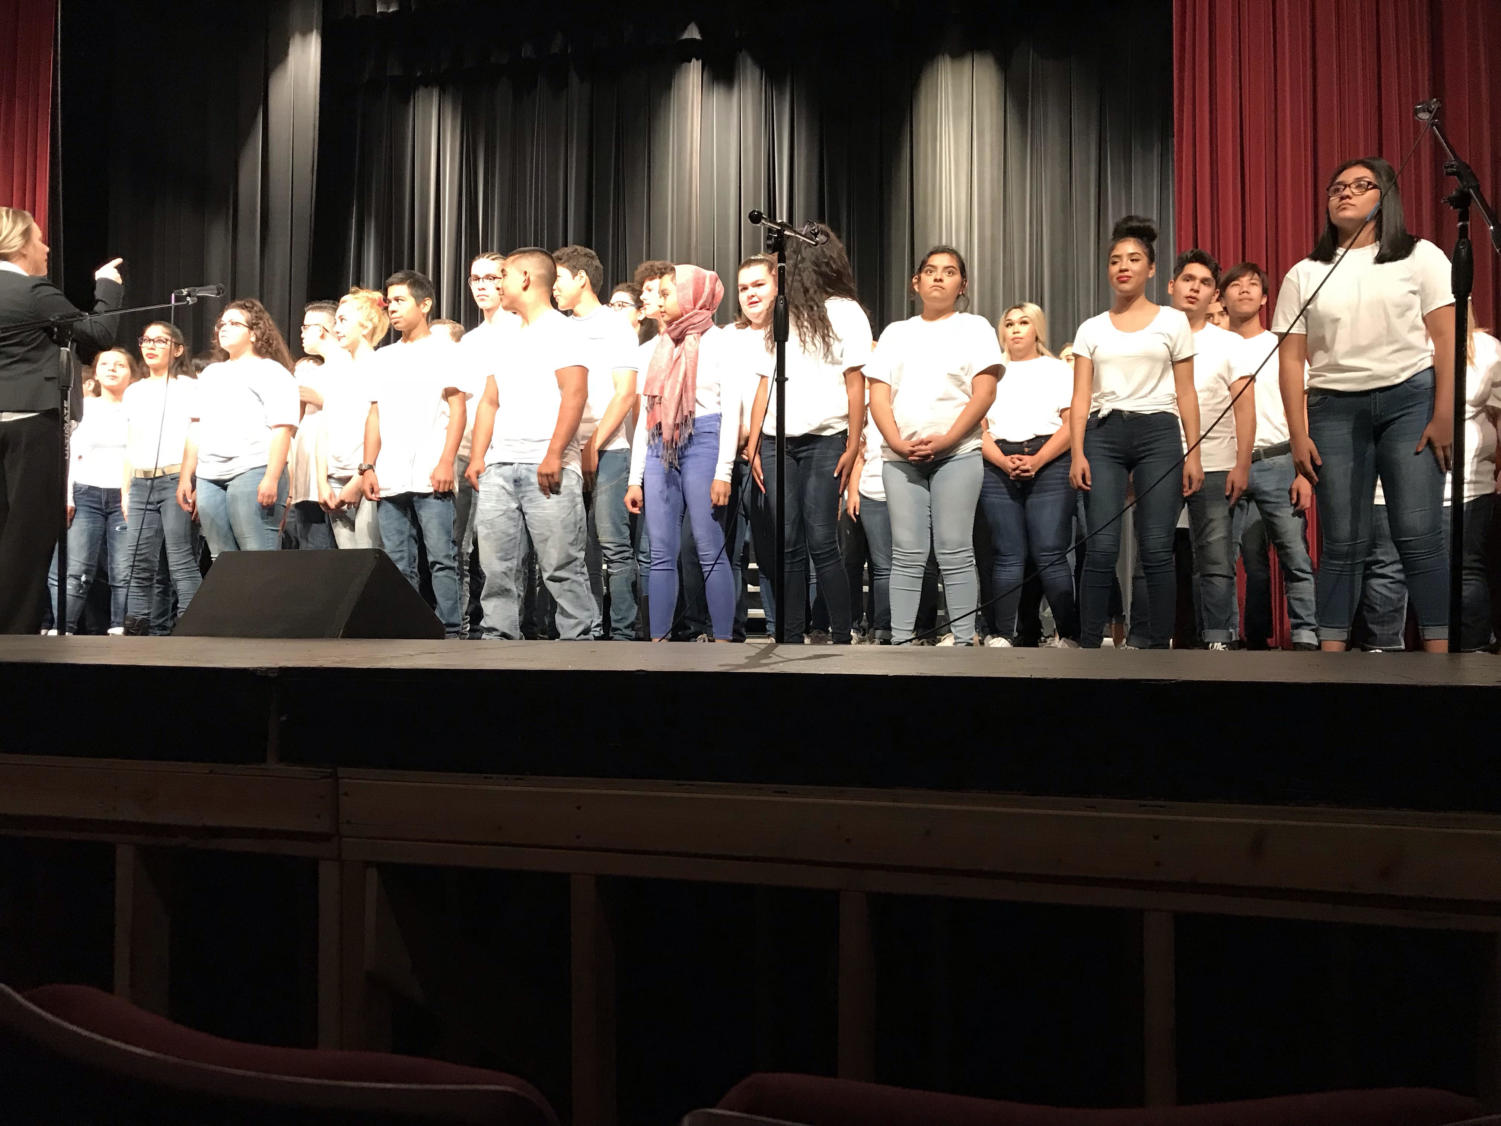 All Greeley West choirs came together to sing